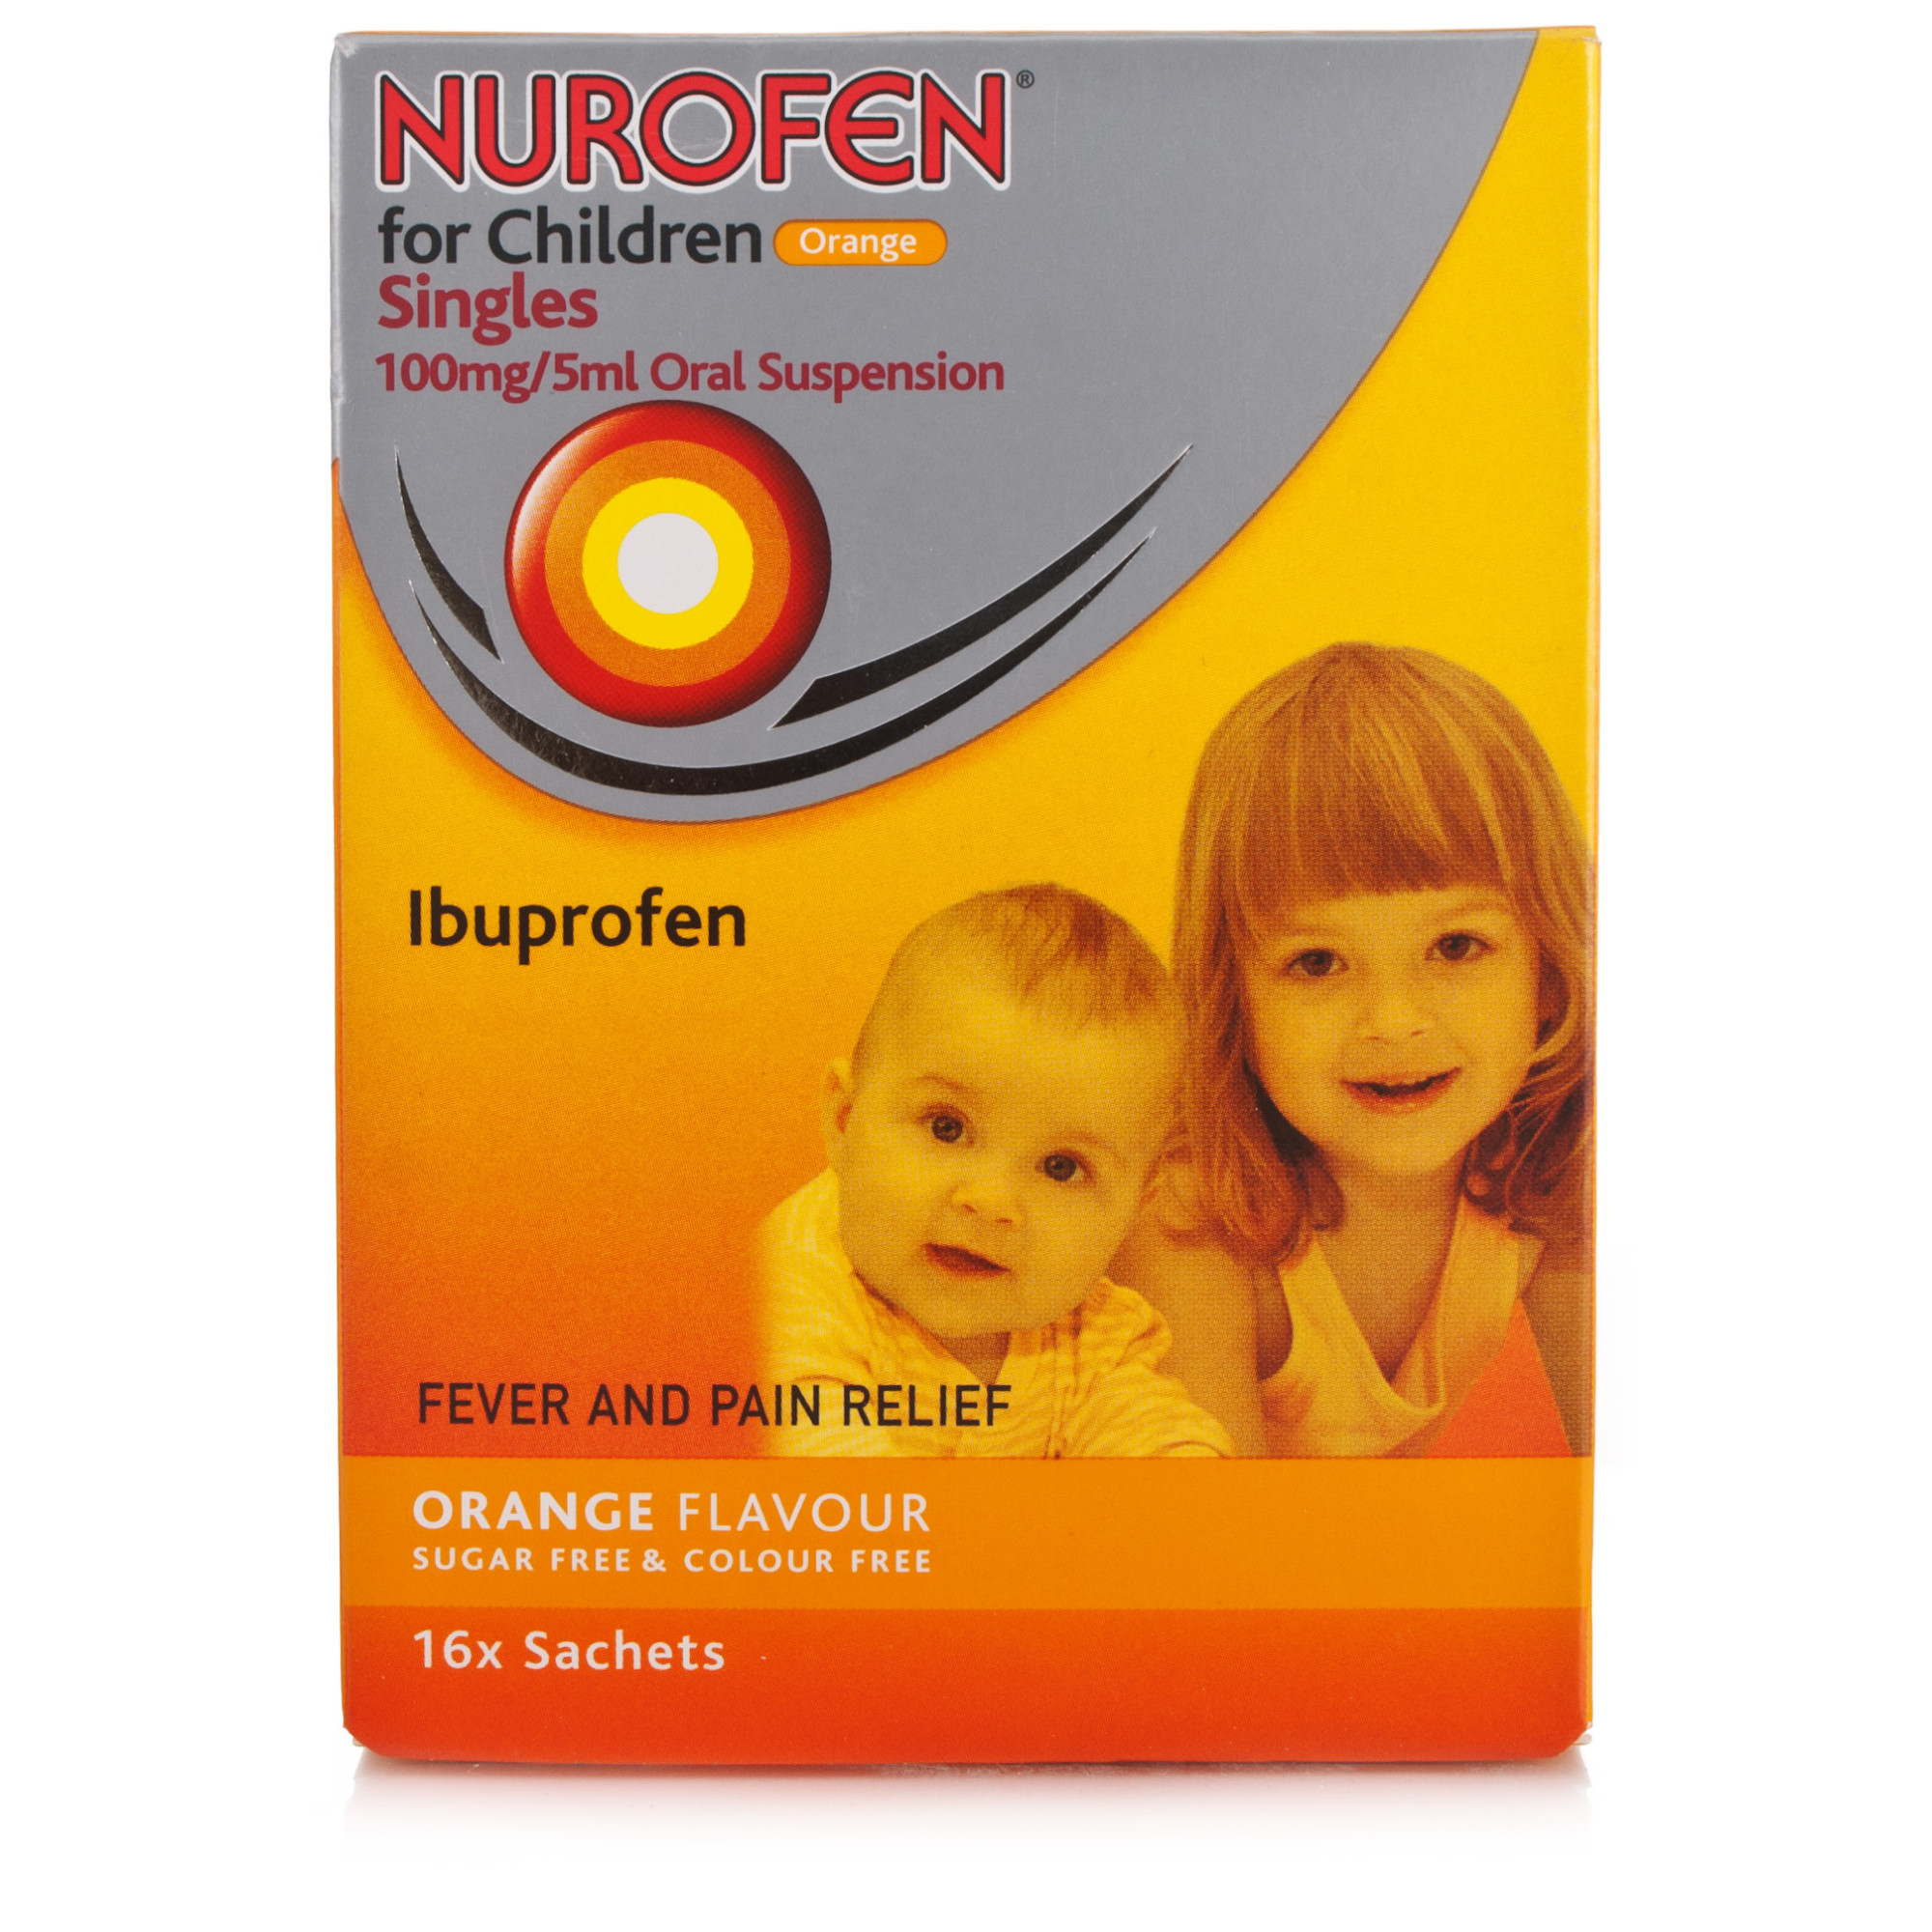 Nurofen for Children - Orange